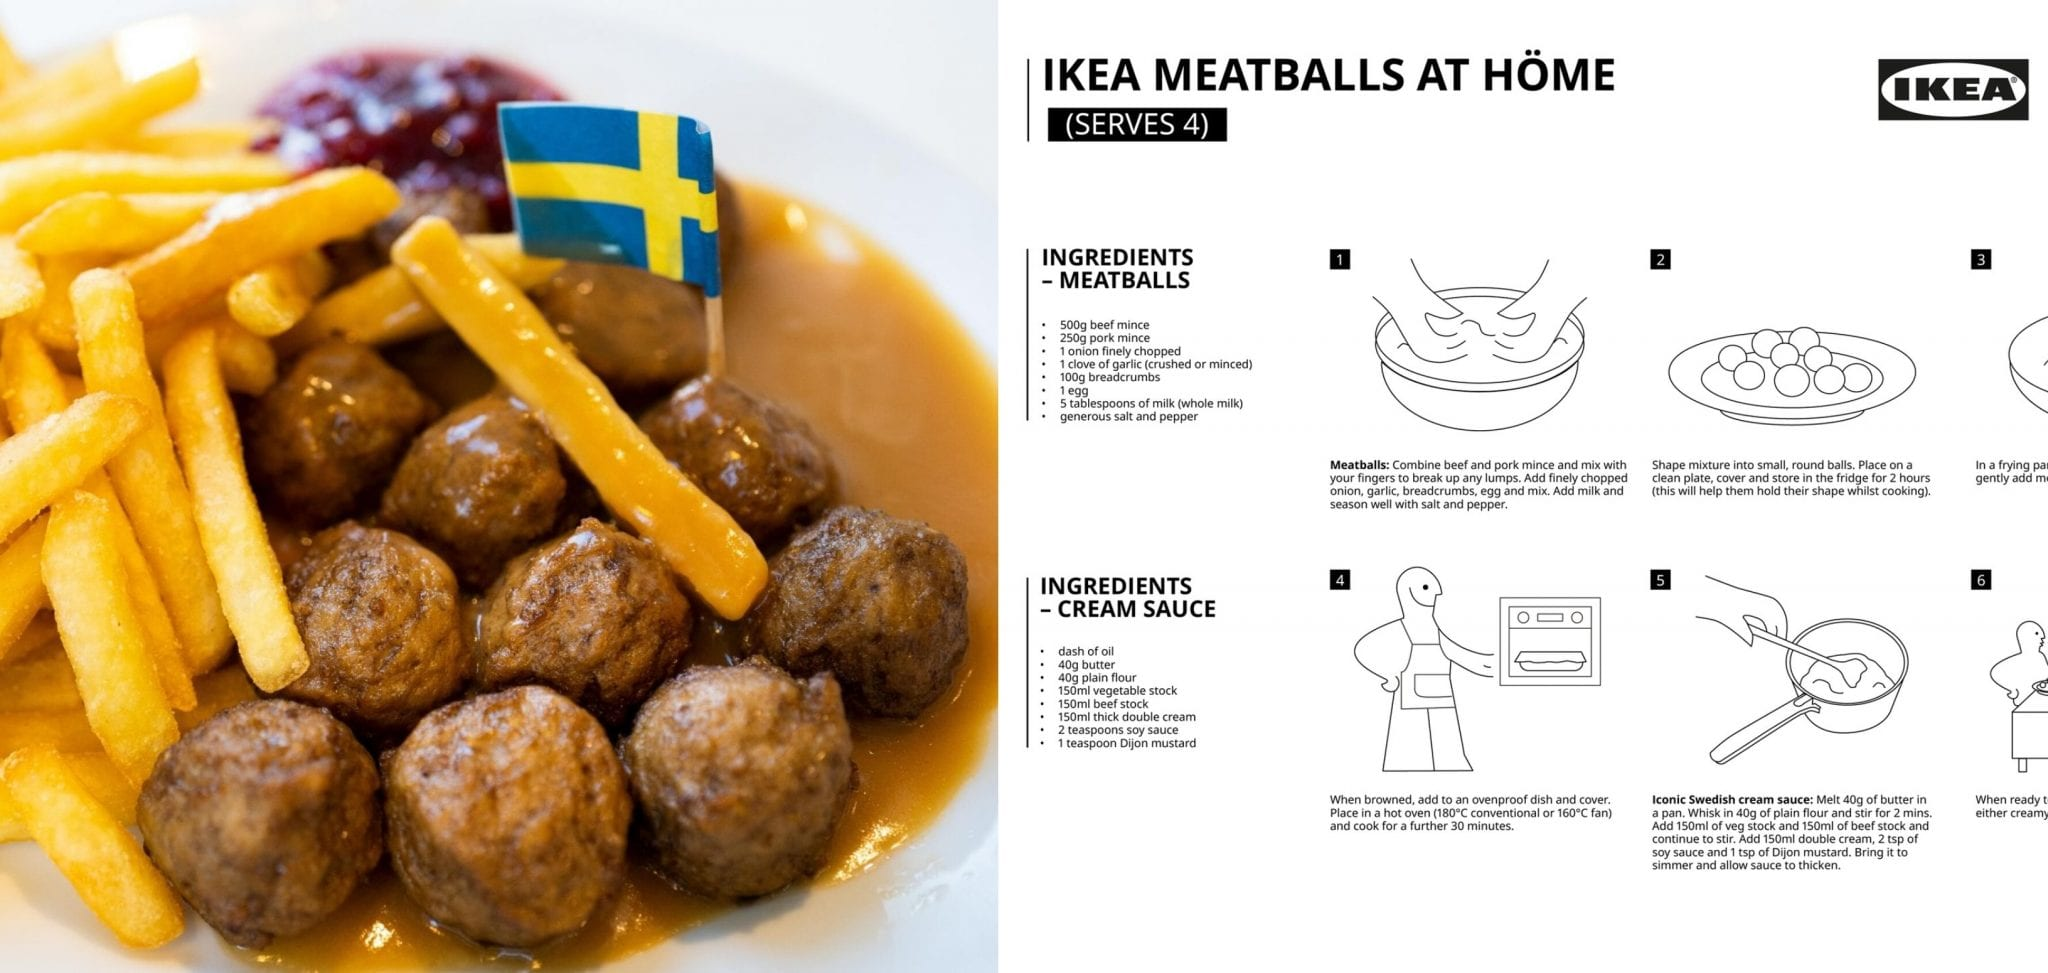 Here S The Official Recipe For Those Iconic Ikea Meatballs You Re Craving